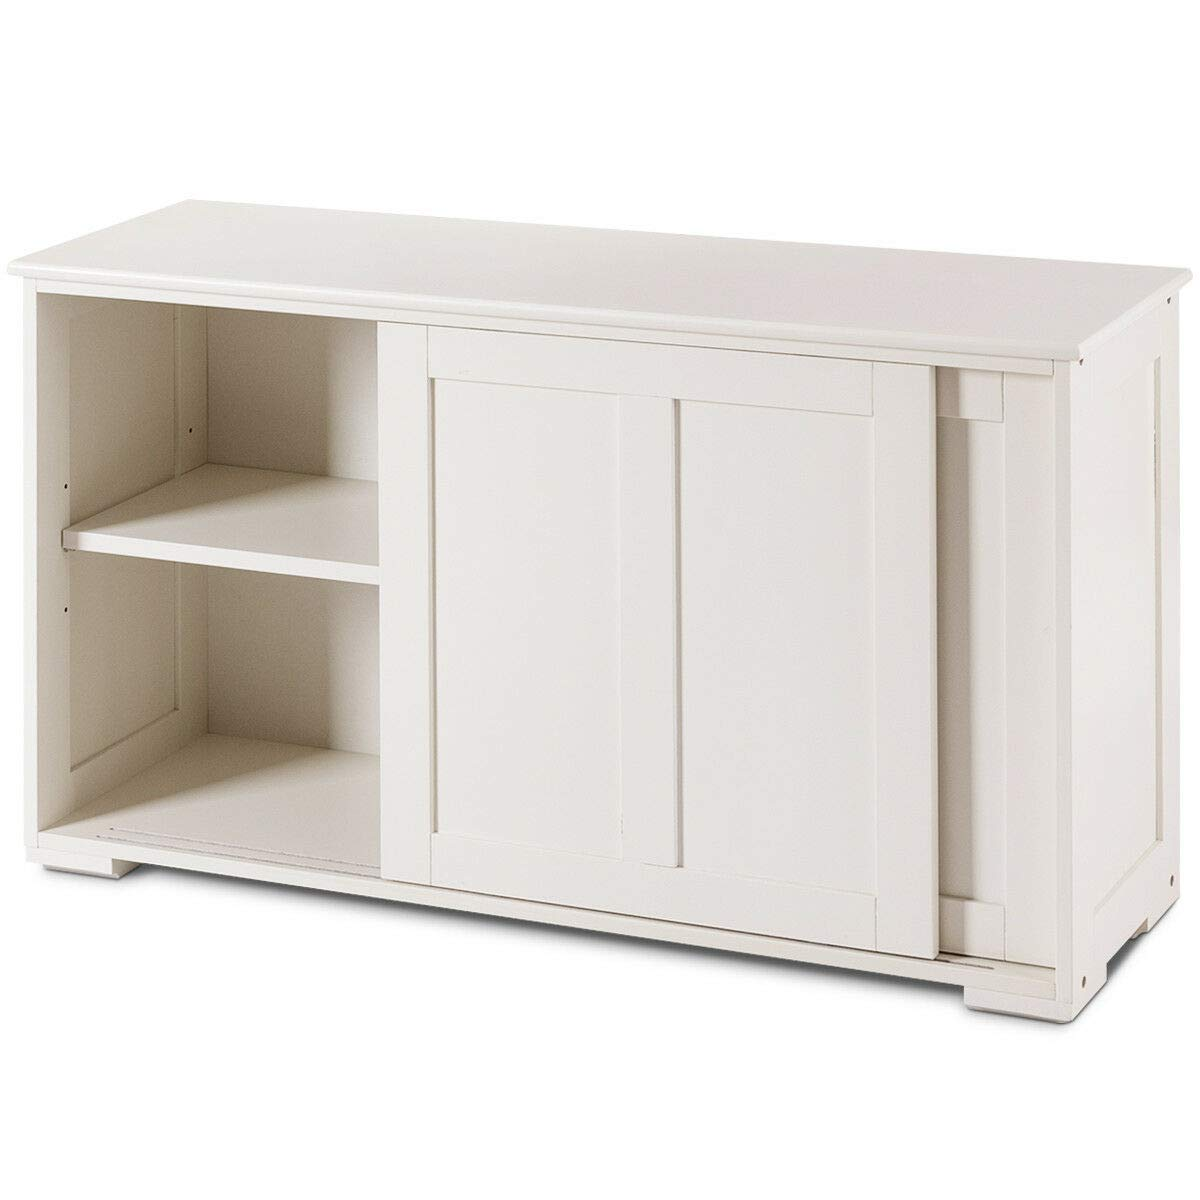 White Cupboard with Doors and Shelves Display Storage Cabinet Sideboard Bookcase